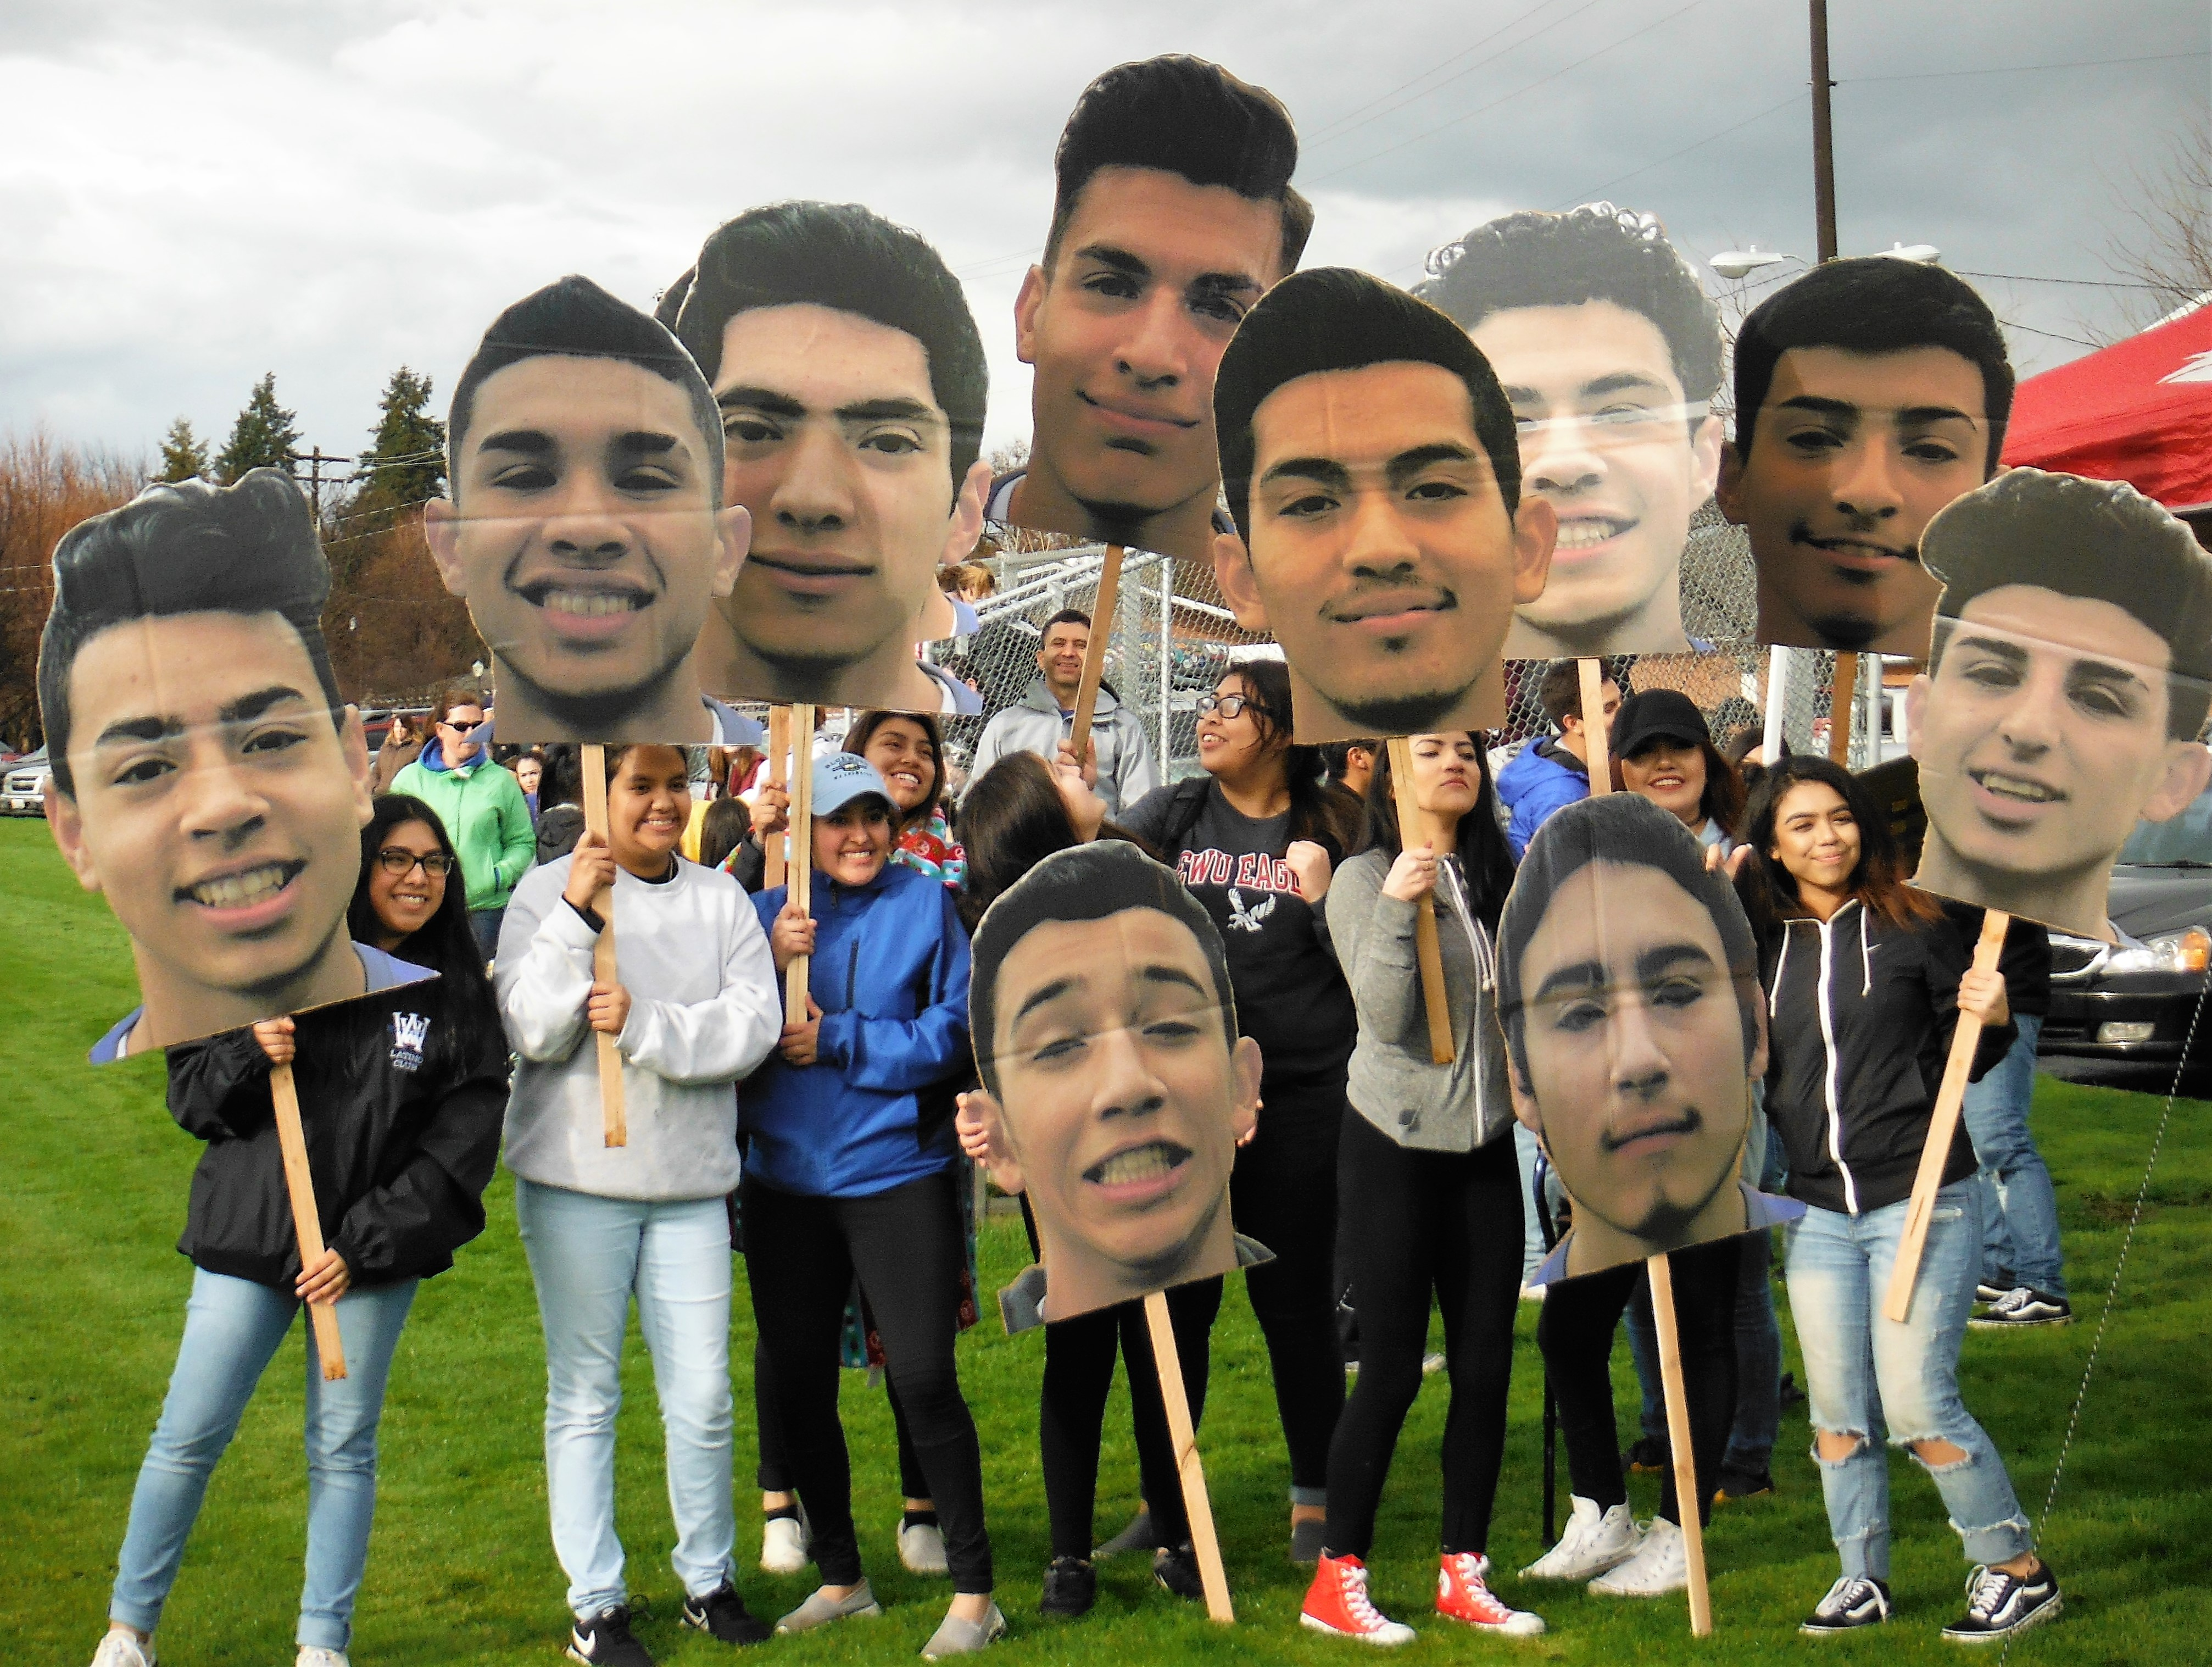 images/athletics/Soccer_Boys/2017_Boys_Soccer_FatHeads.jpg